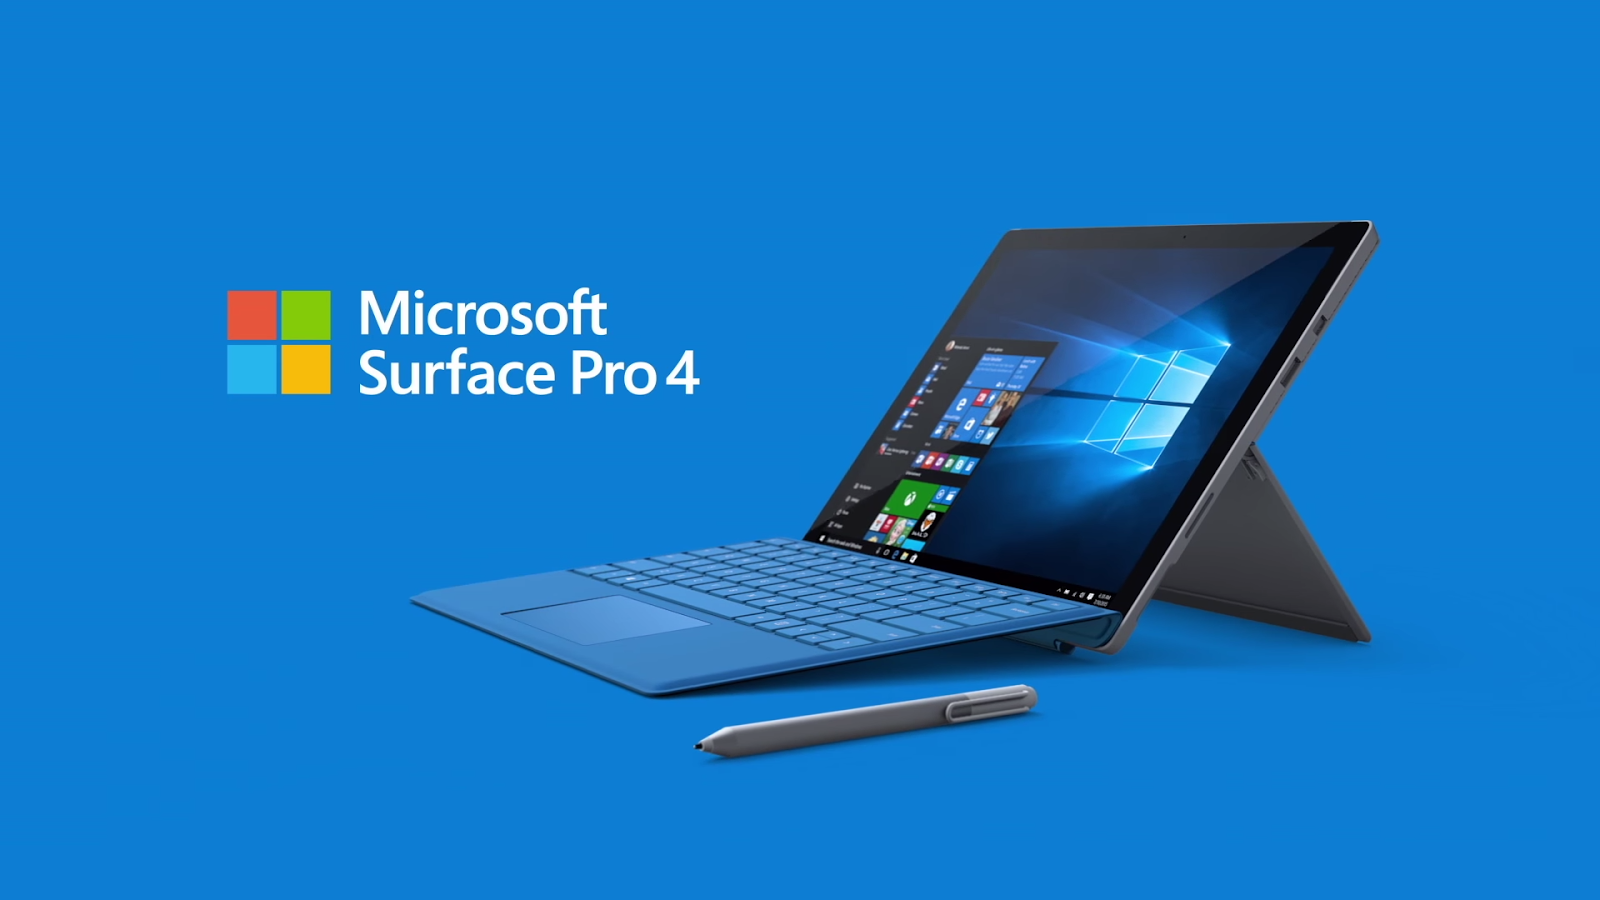 Microsoft Surface Pro 4 Specification And Features Etechtime Microsoft Surface Pro Laptop Microsoft Surface Pro Microsoft Surface Pro 4